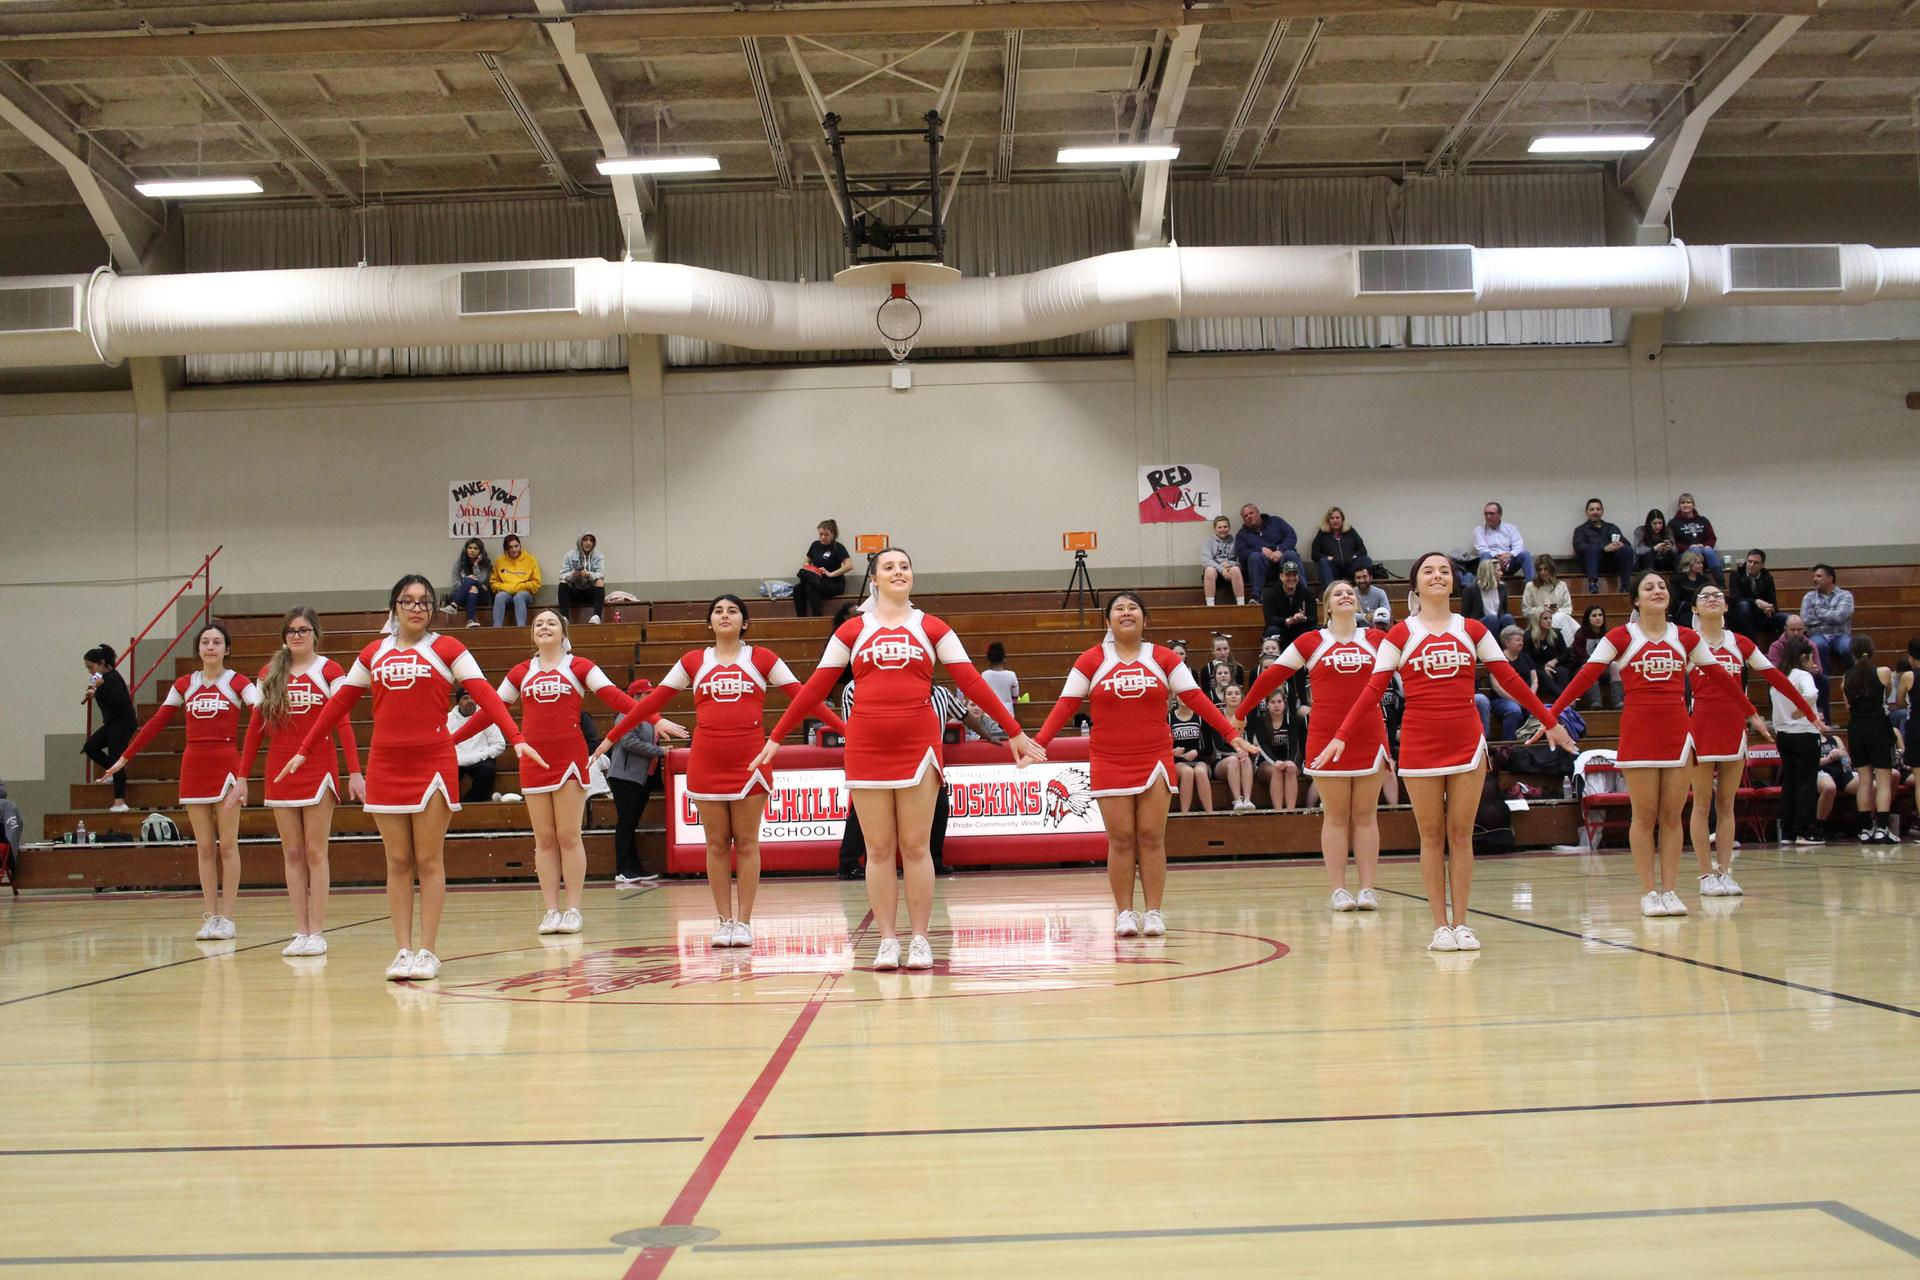 Cheer performing at Fresno Christian basketball game